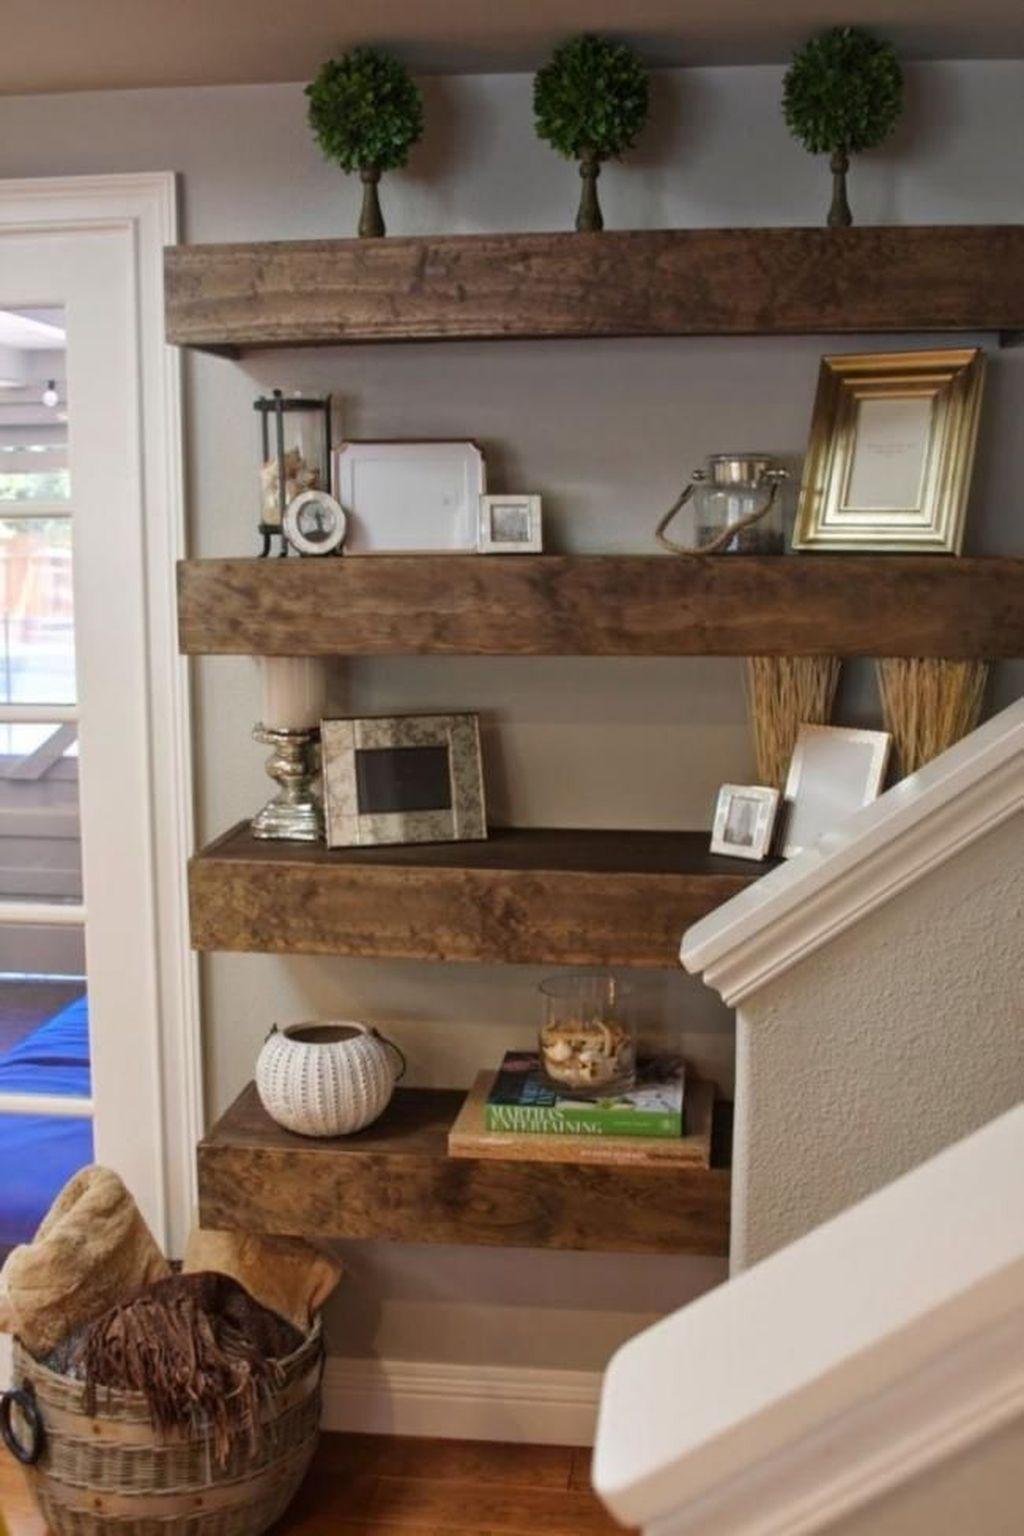 50+ Cheap Diy Wall Shelves Floating Ideas Floating